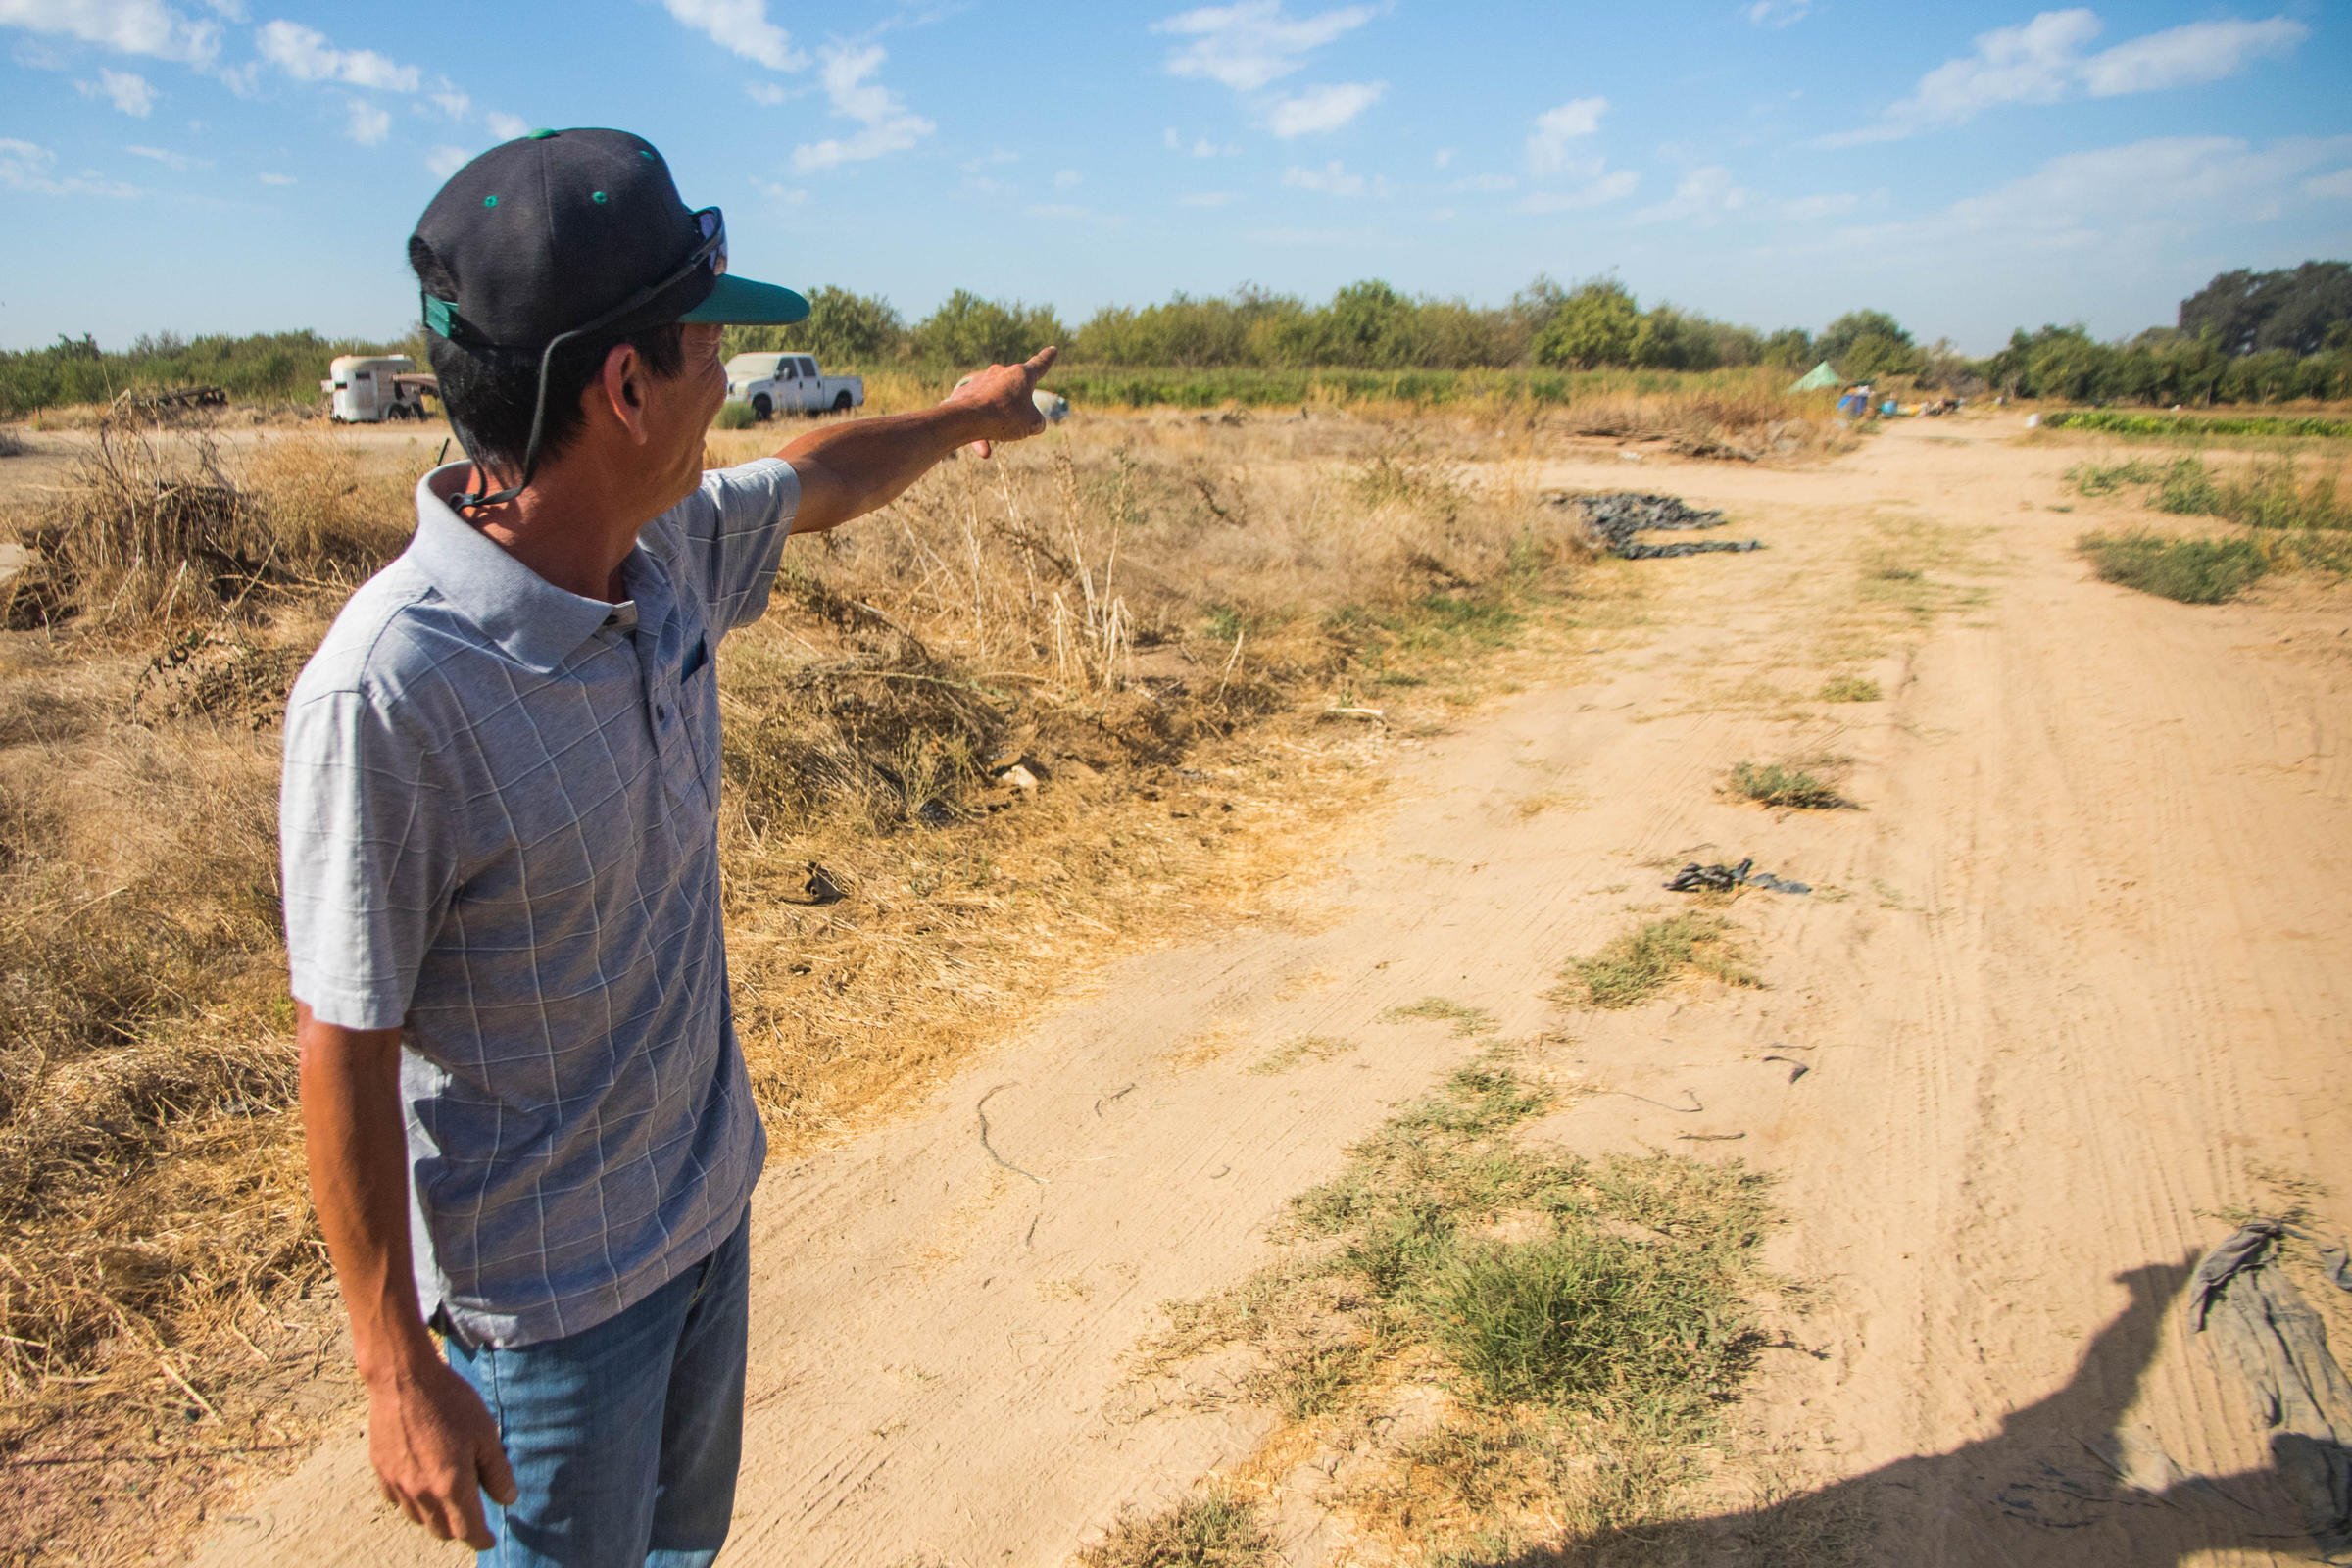 a man points off in the distance in a dirt farm